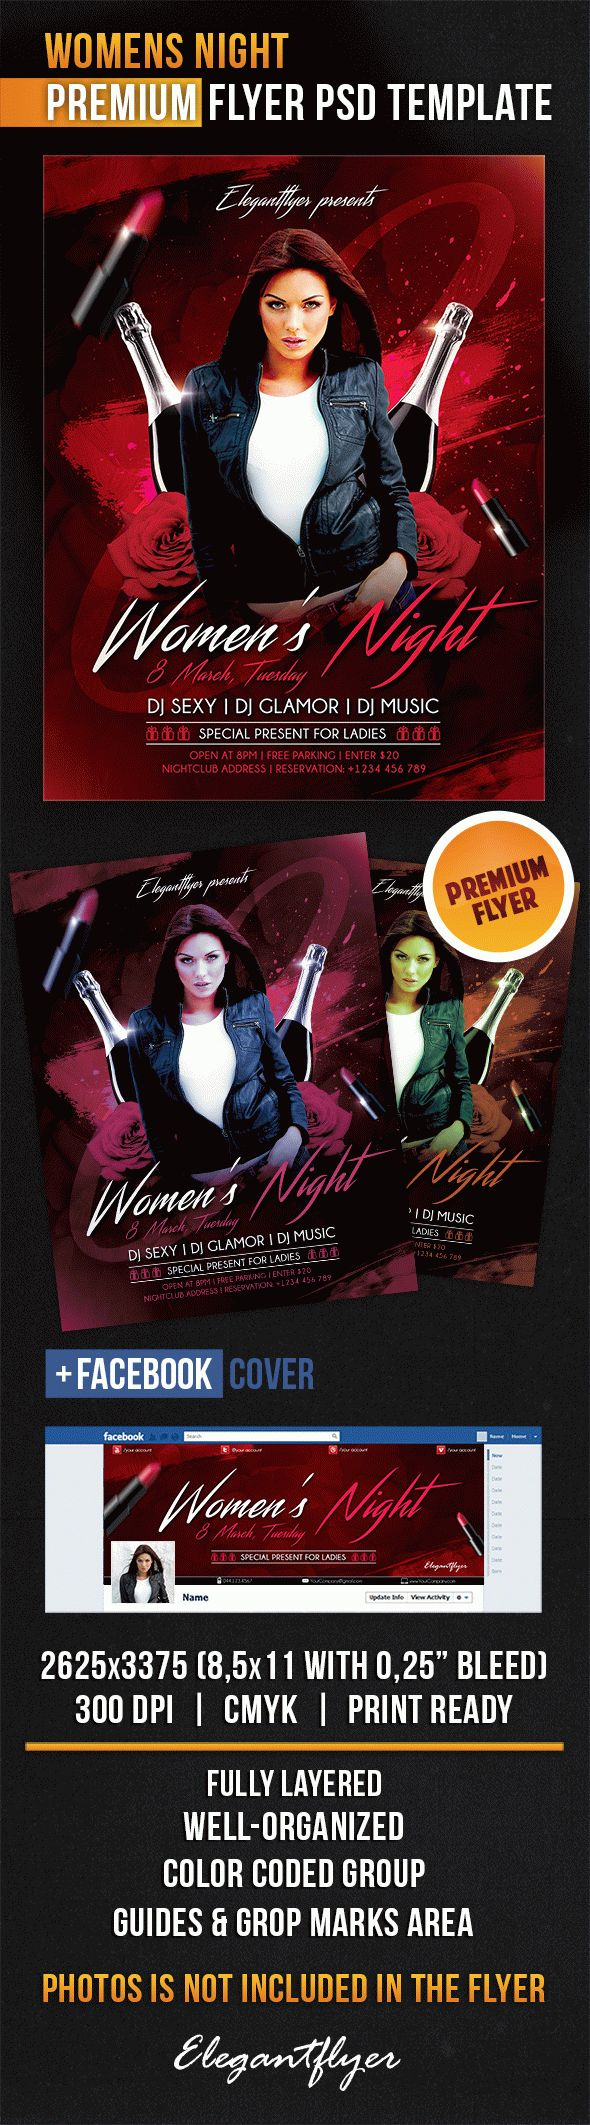 Women's Night – Flyer PSD Template + Facebook Cover